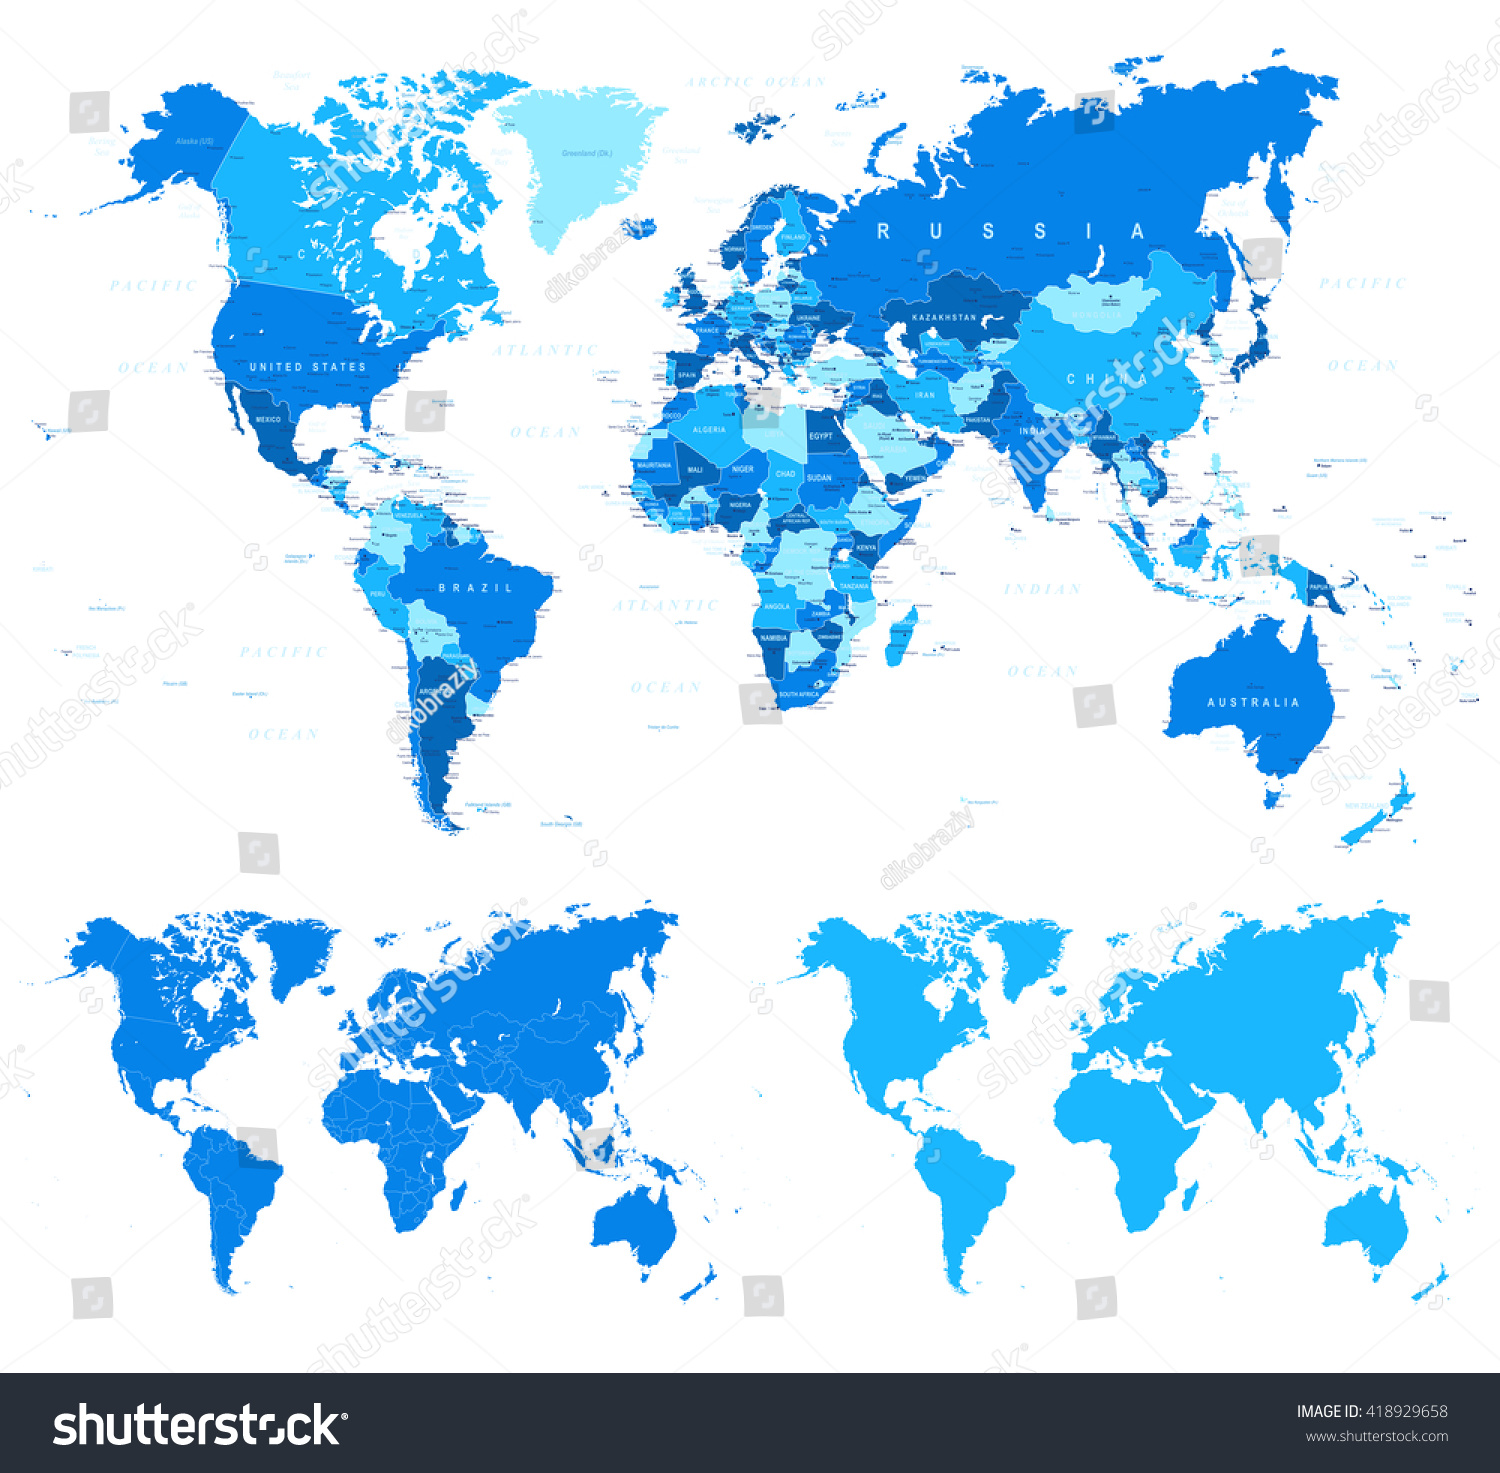 Blue World Map Borders Countries Cities Stock Vector - World map with cities and countries